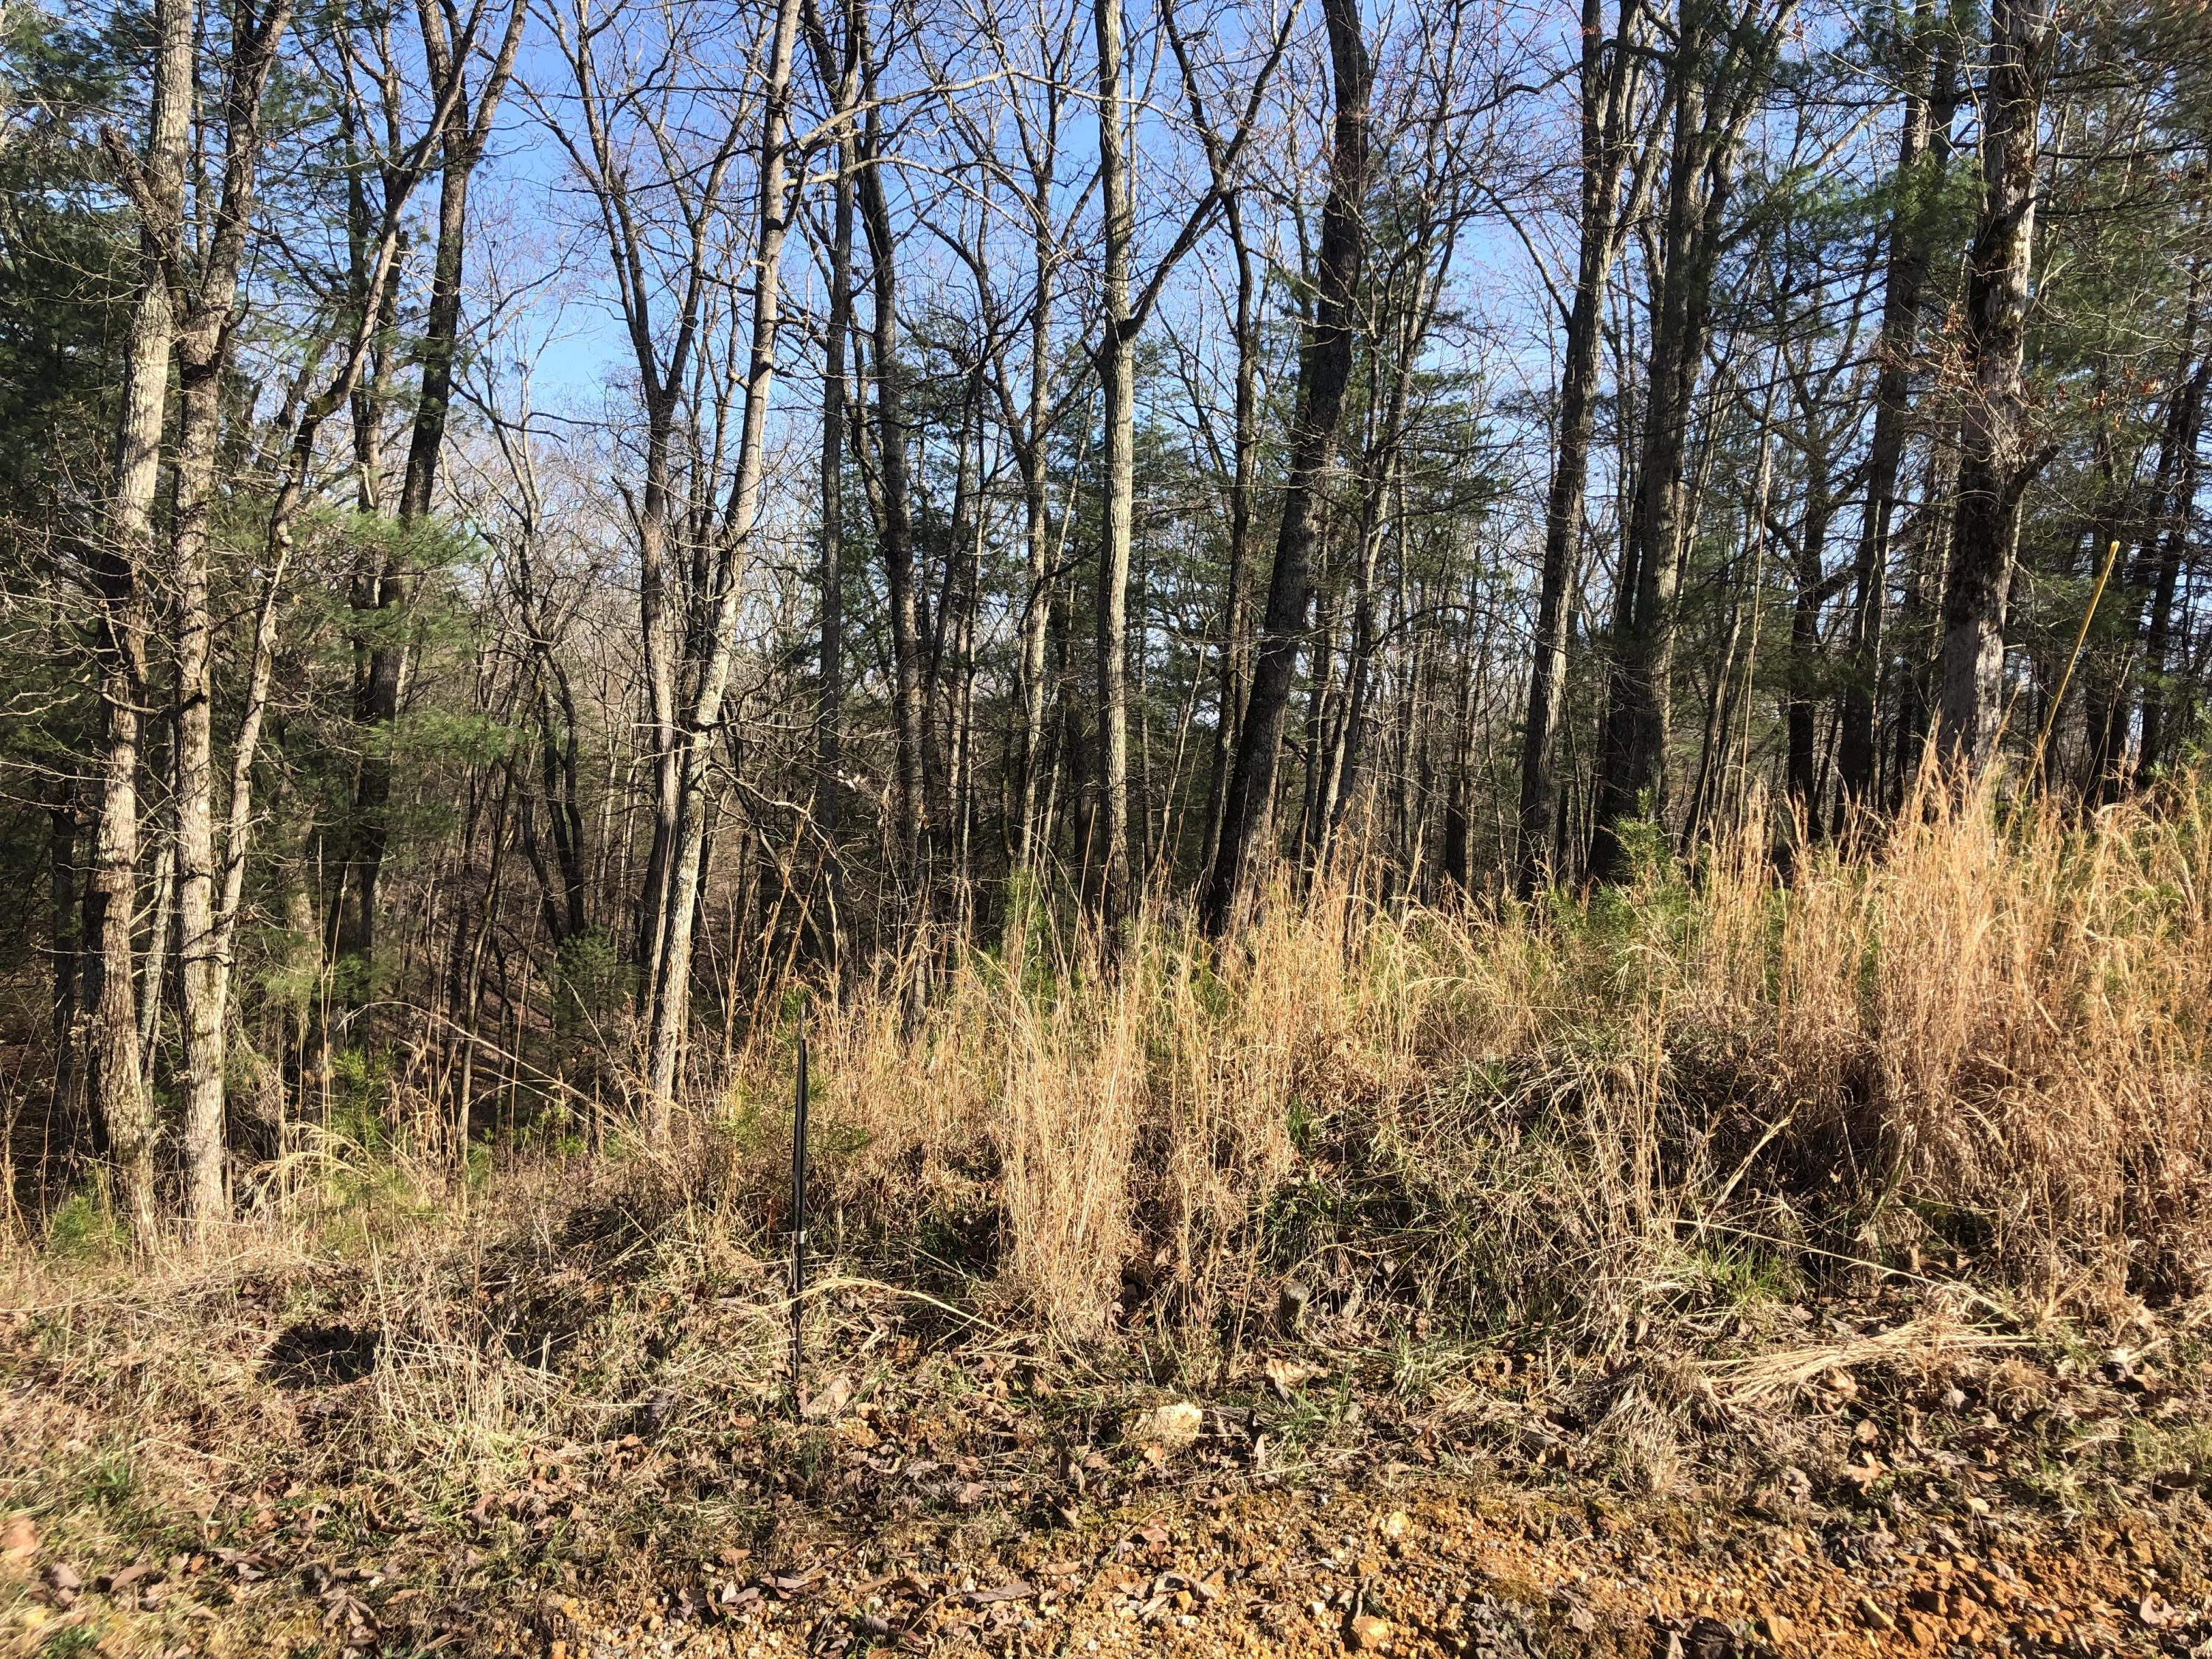 Lot 286 Maple, Spring City, Tennessee, United States 37381, ,Lots & Acreage,For Sale,Maple,1122173